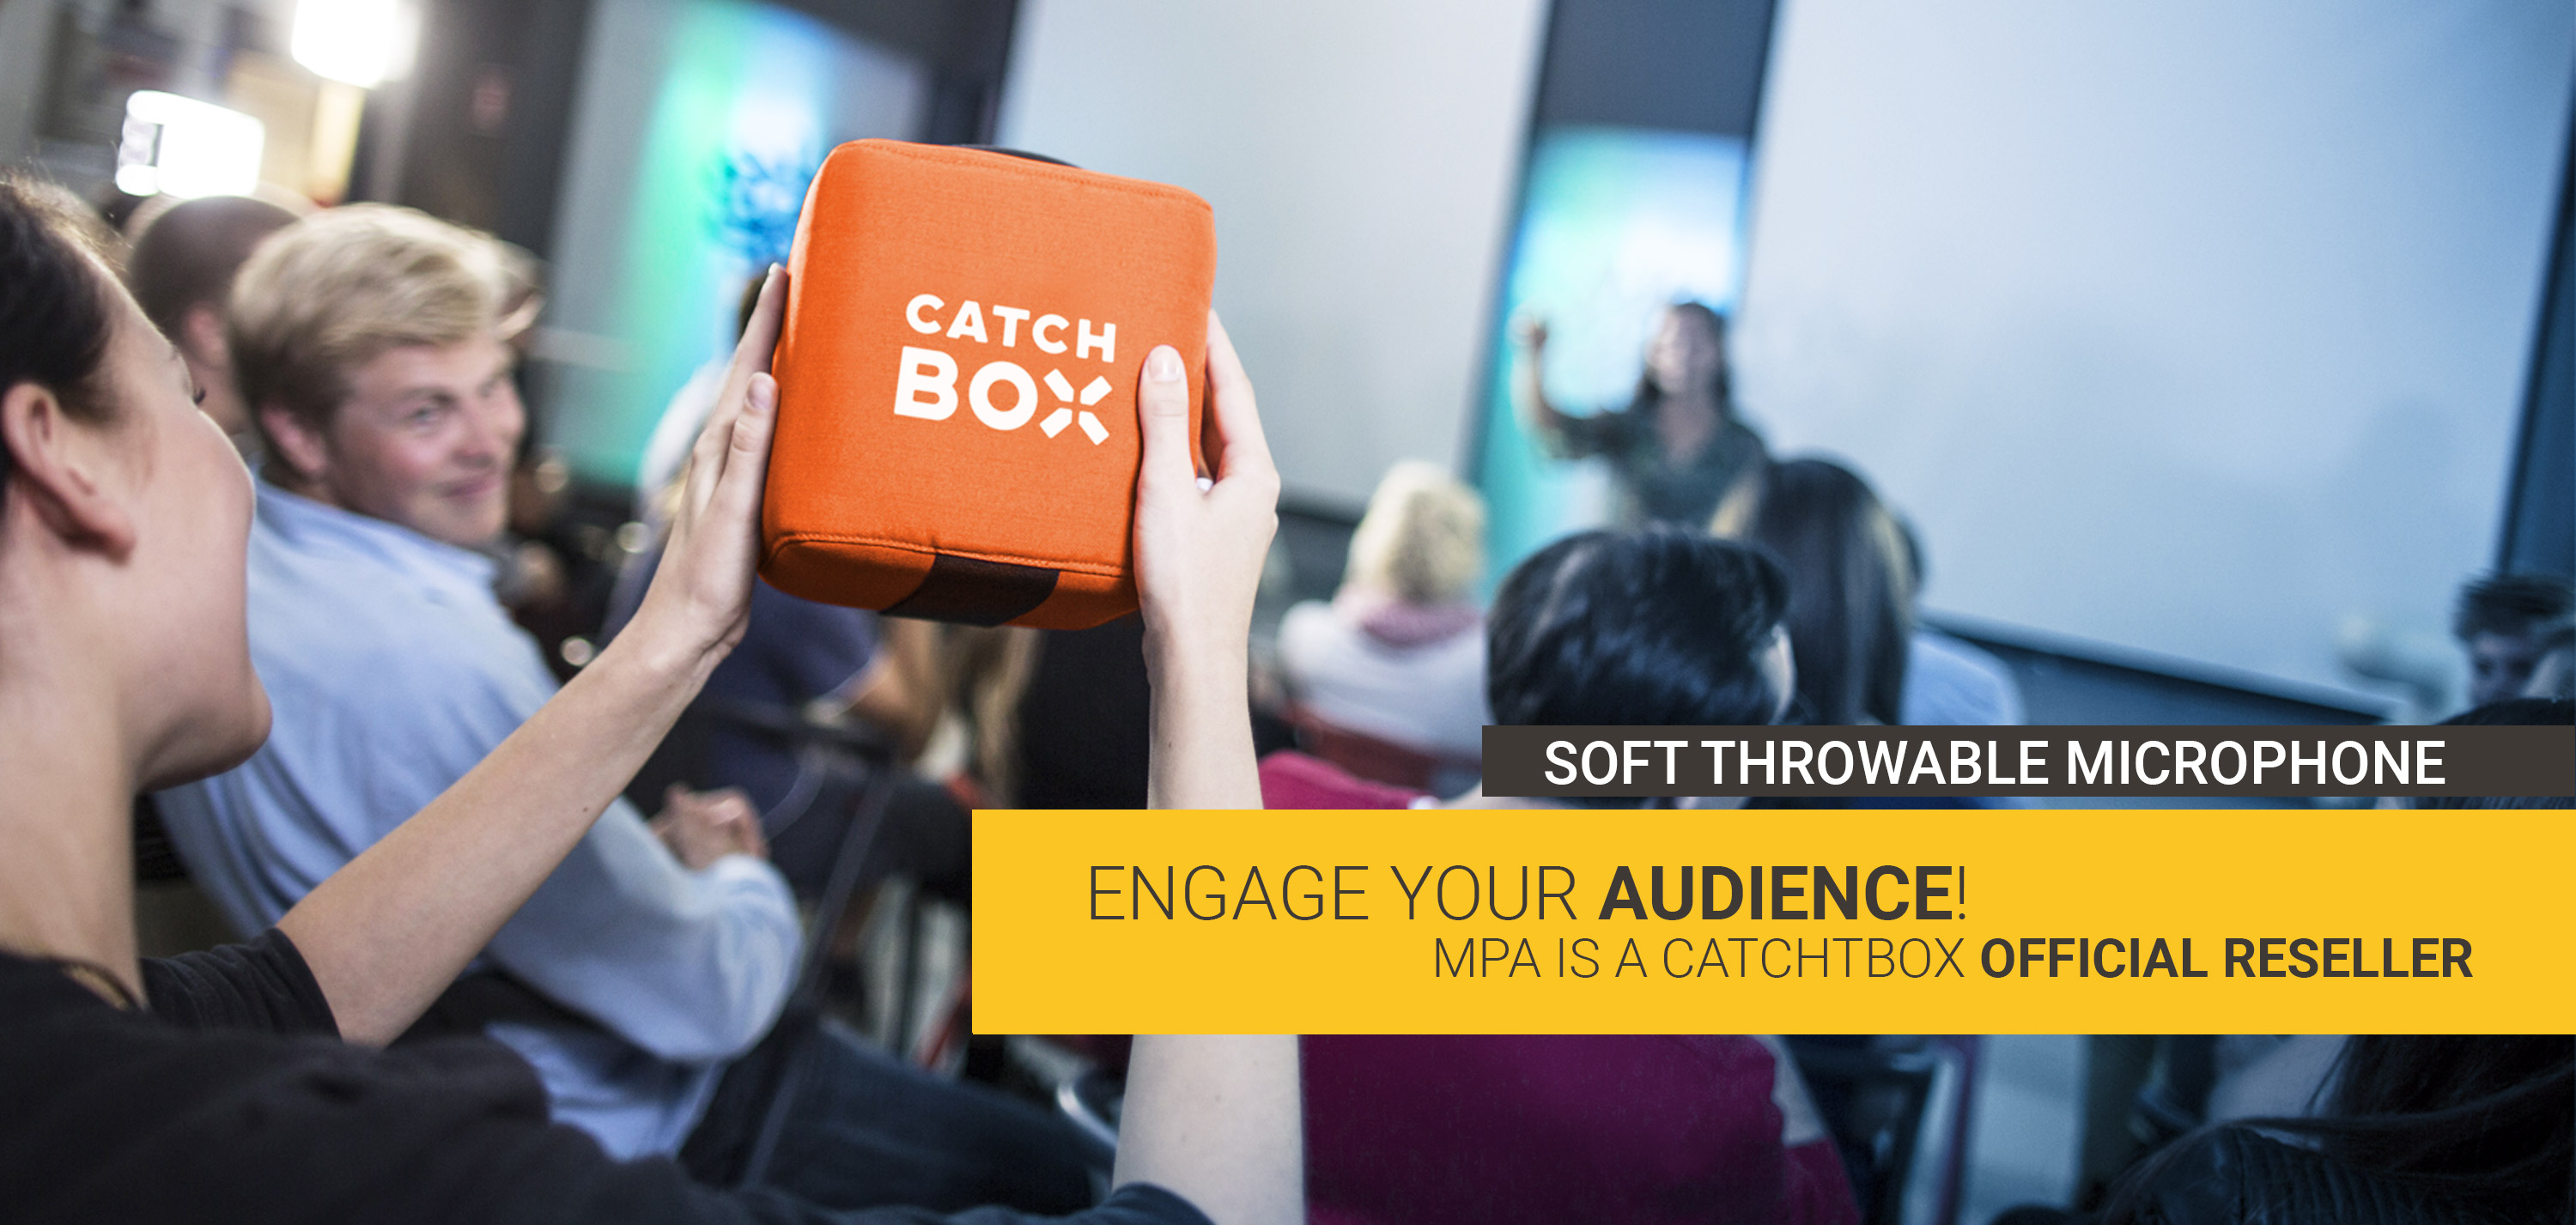 Catchbox, the throwable wireless microphone for audience engagement